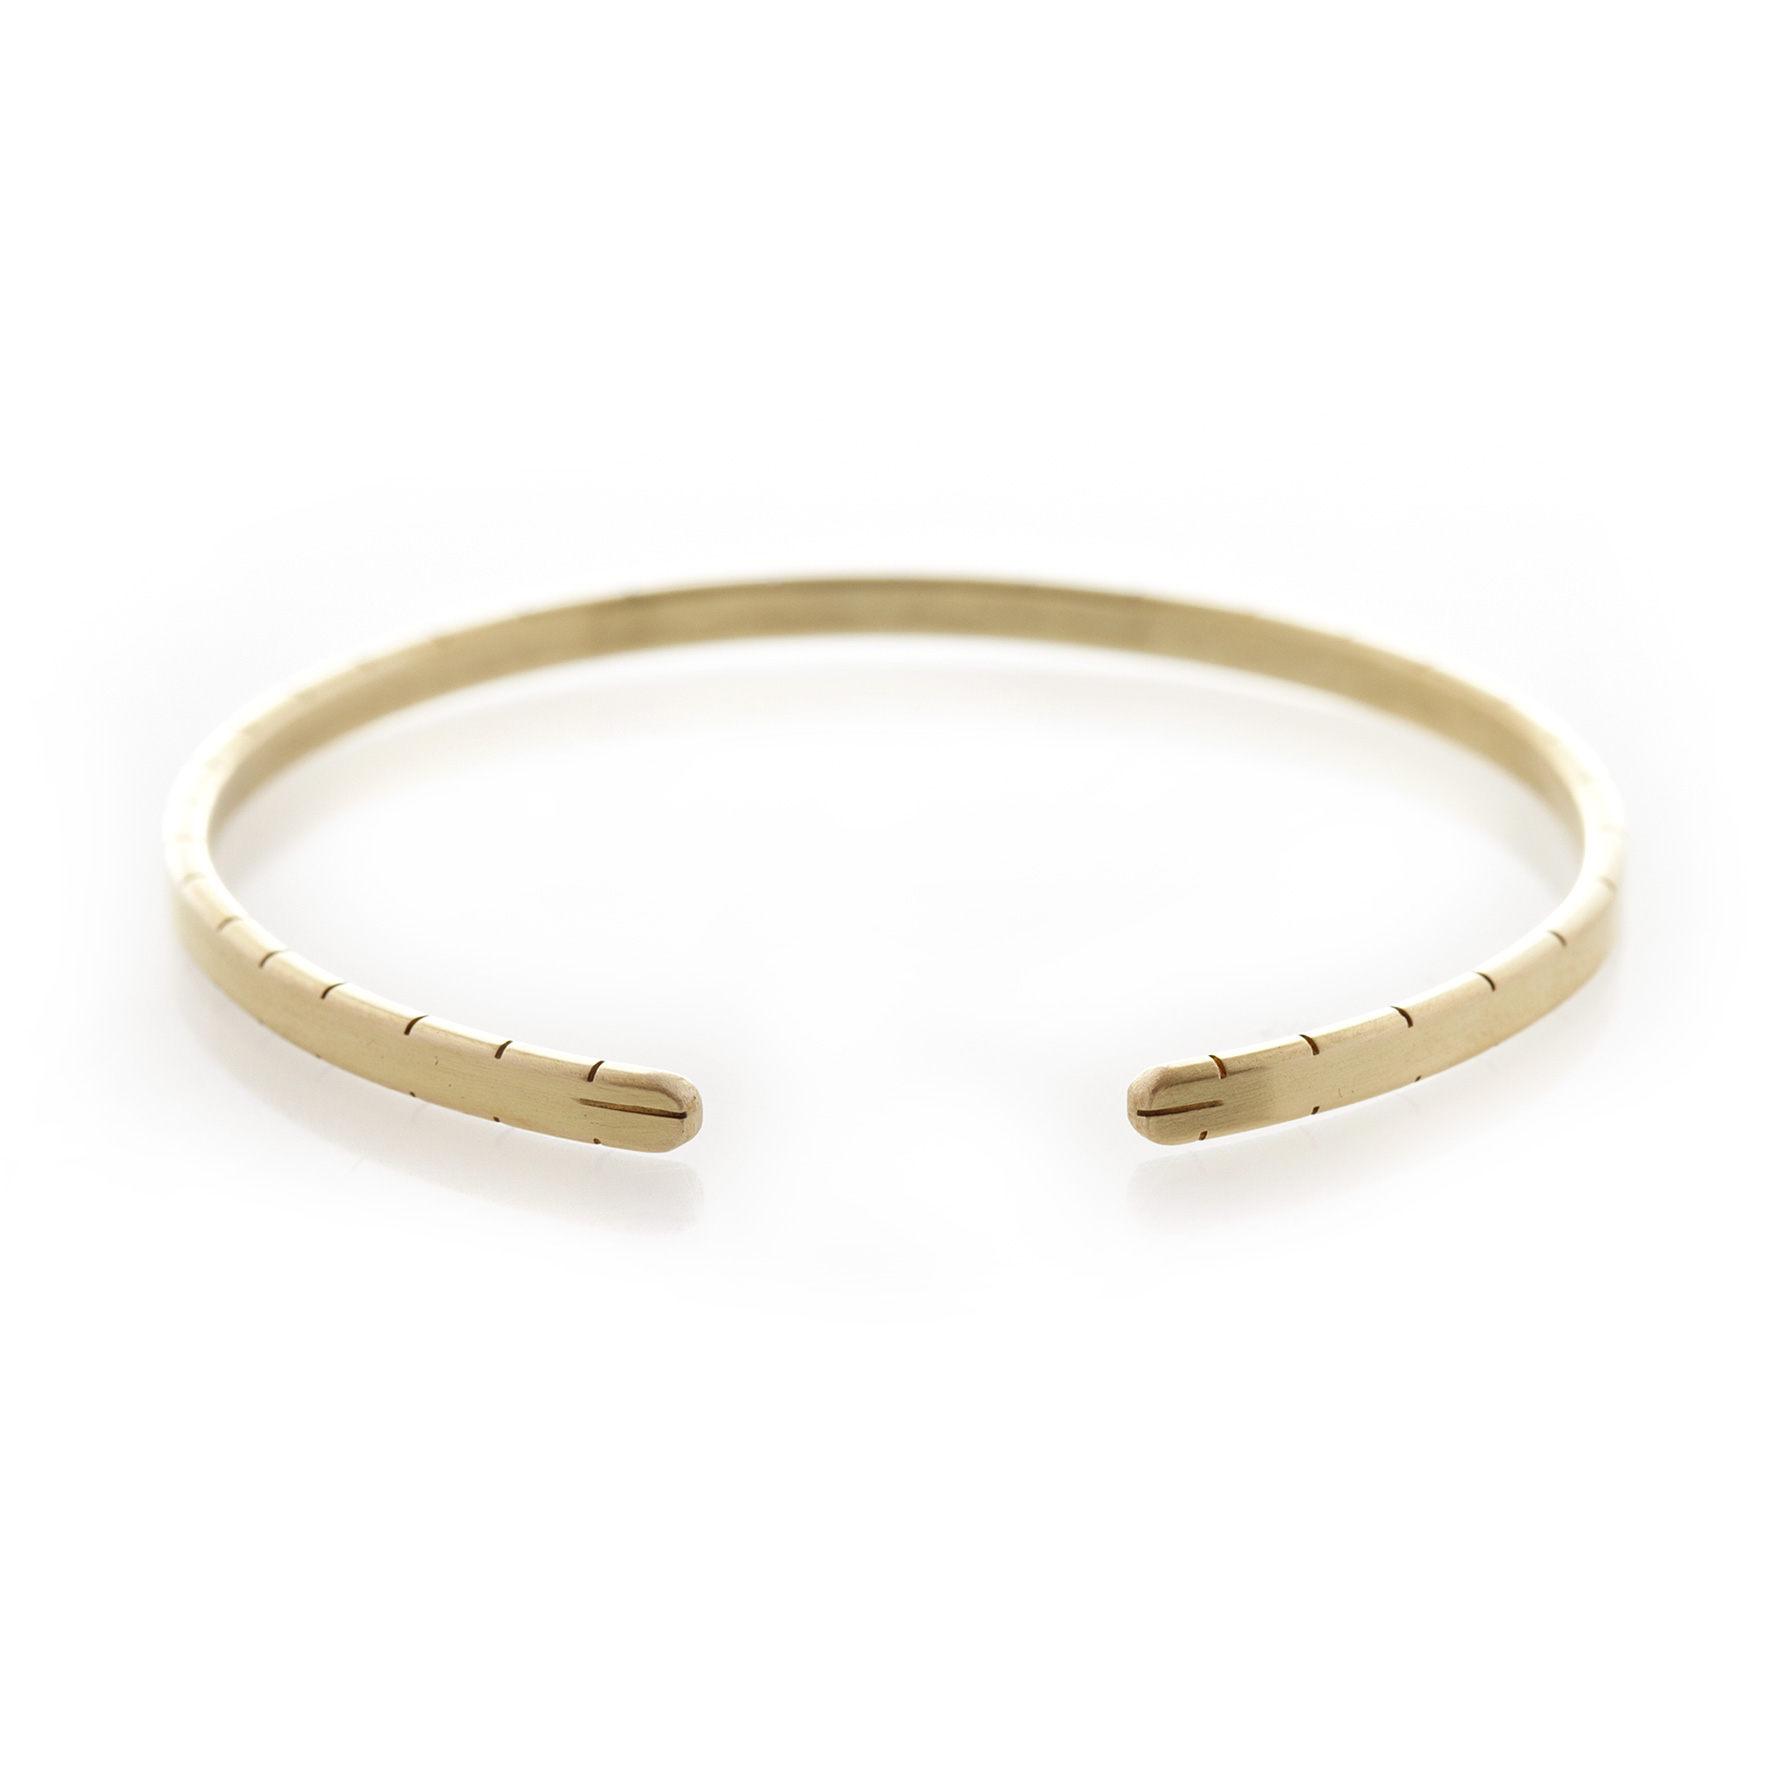 Three Quarter striped edge brass bangle